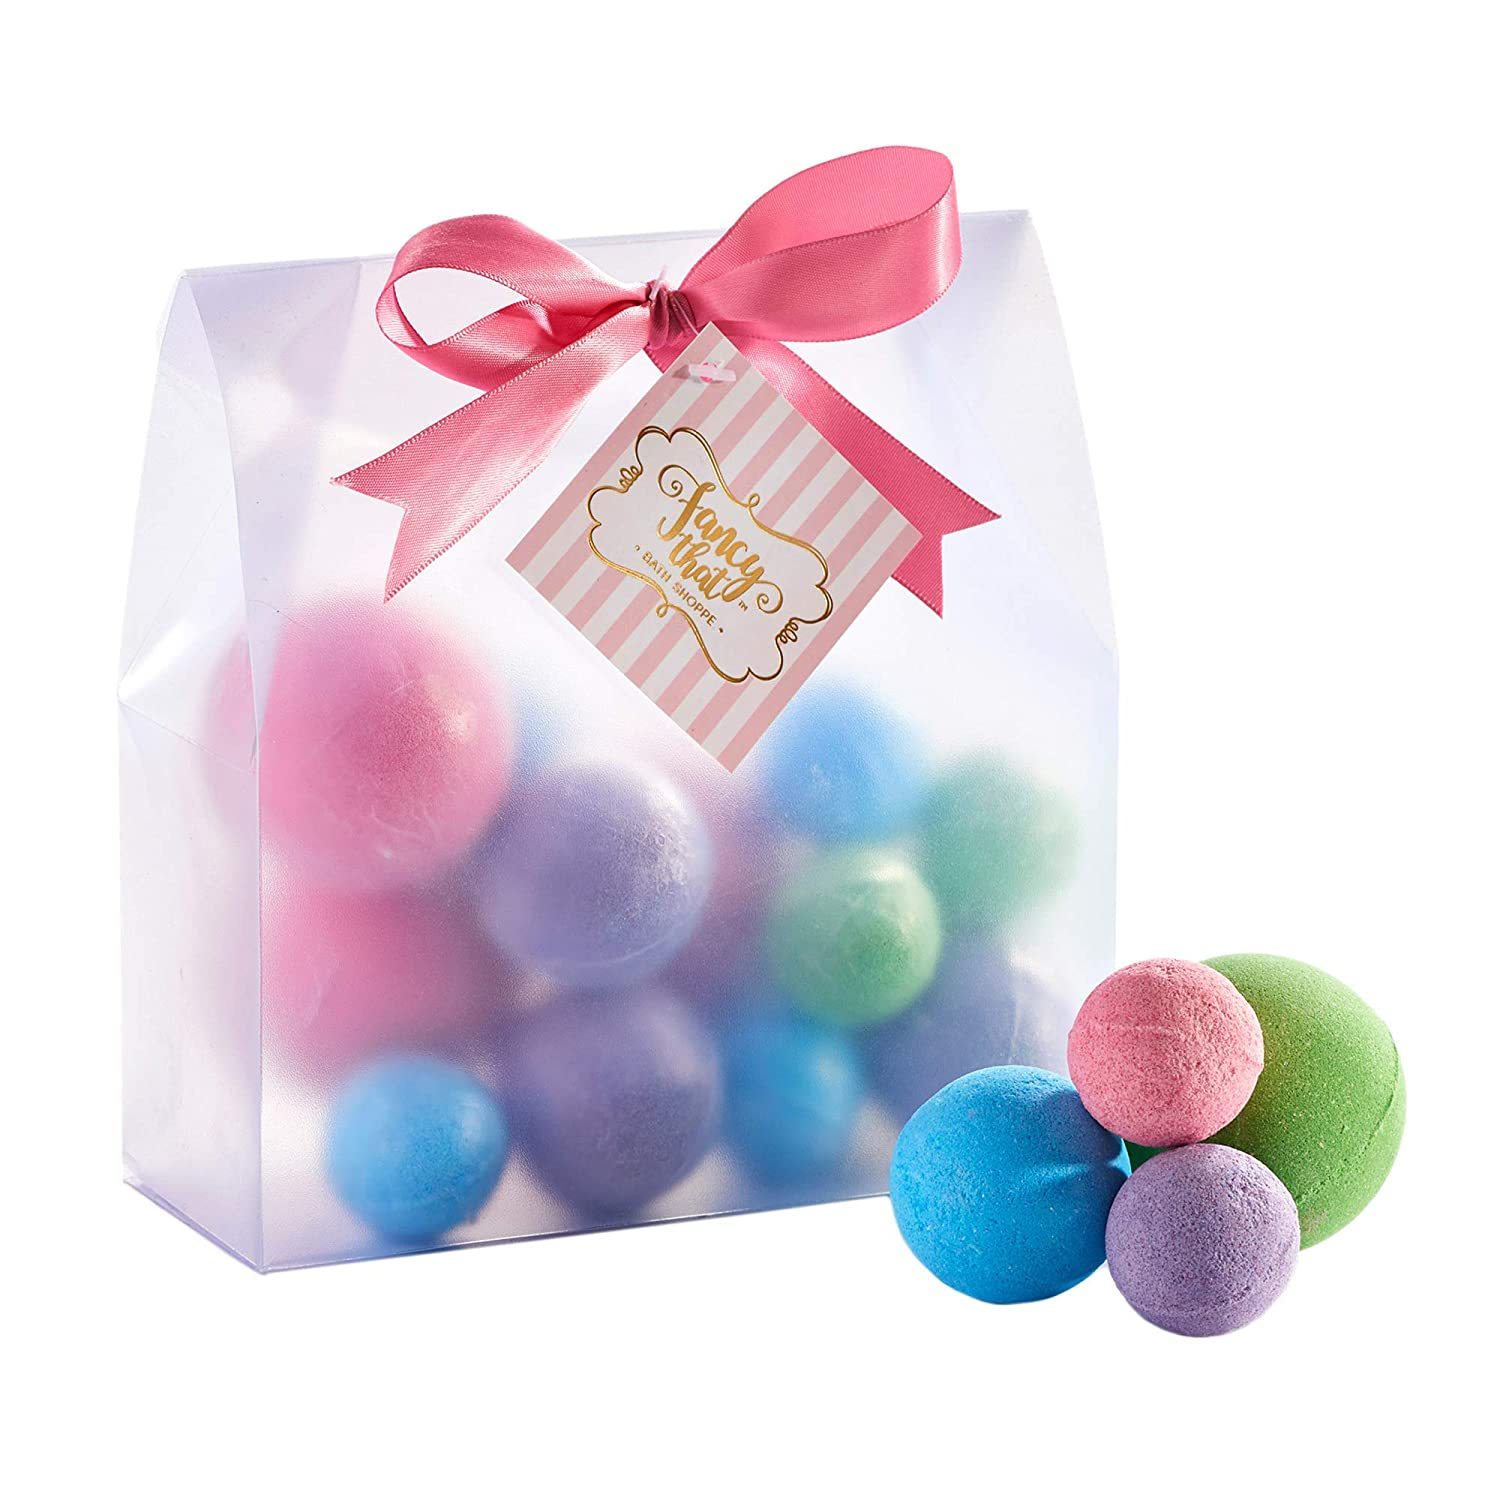 Scented Assorted Size Peony Lavender Lime Ocean Bath Bombs 13 Piece Gift Set